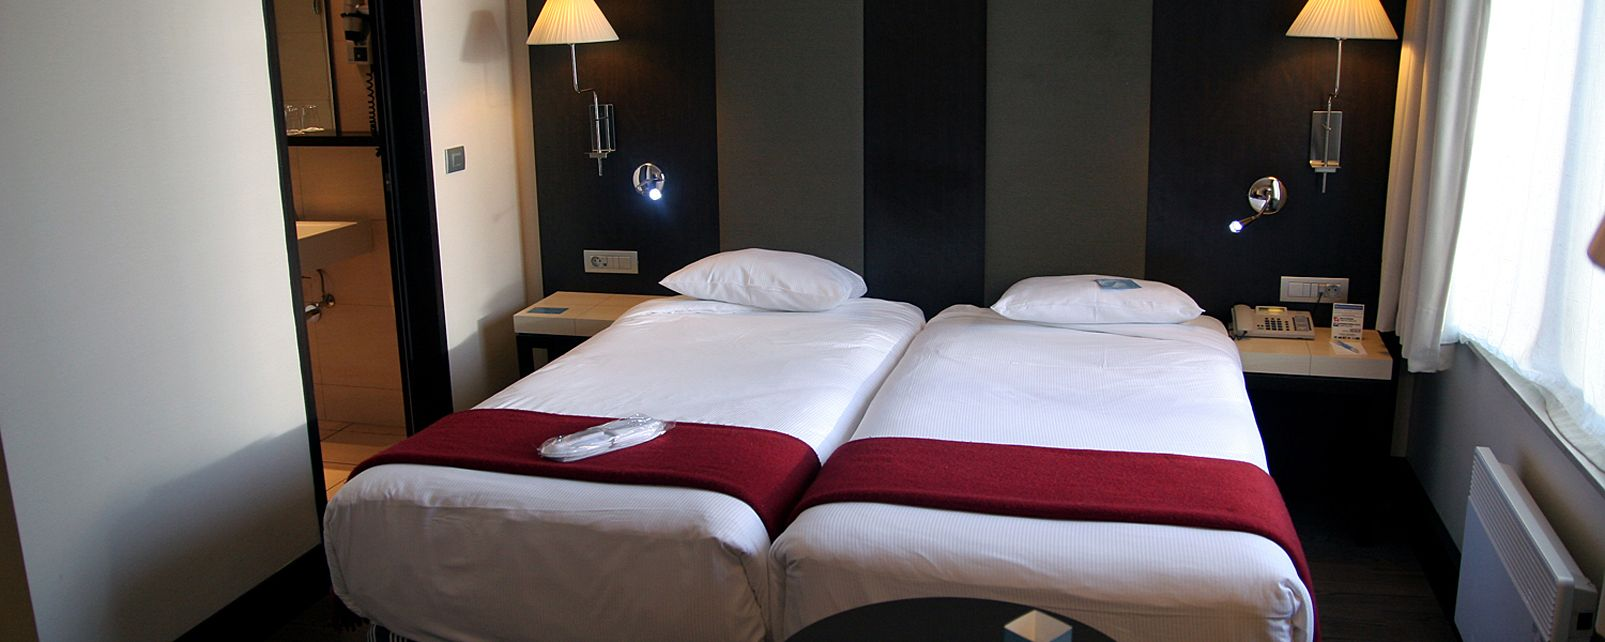 Hotel NH Grand Place